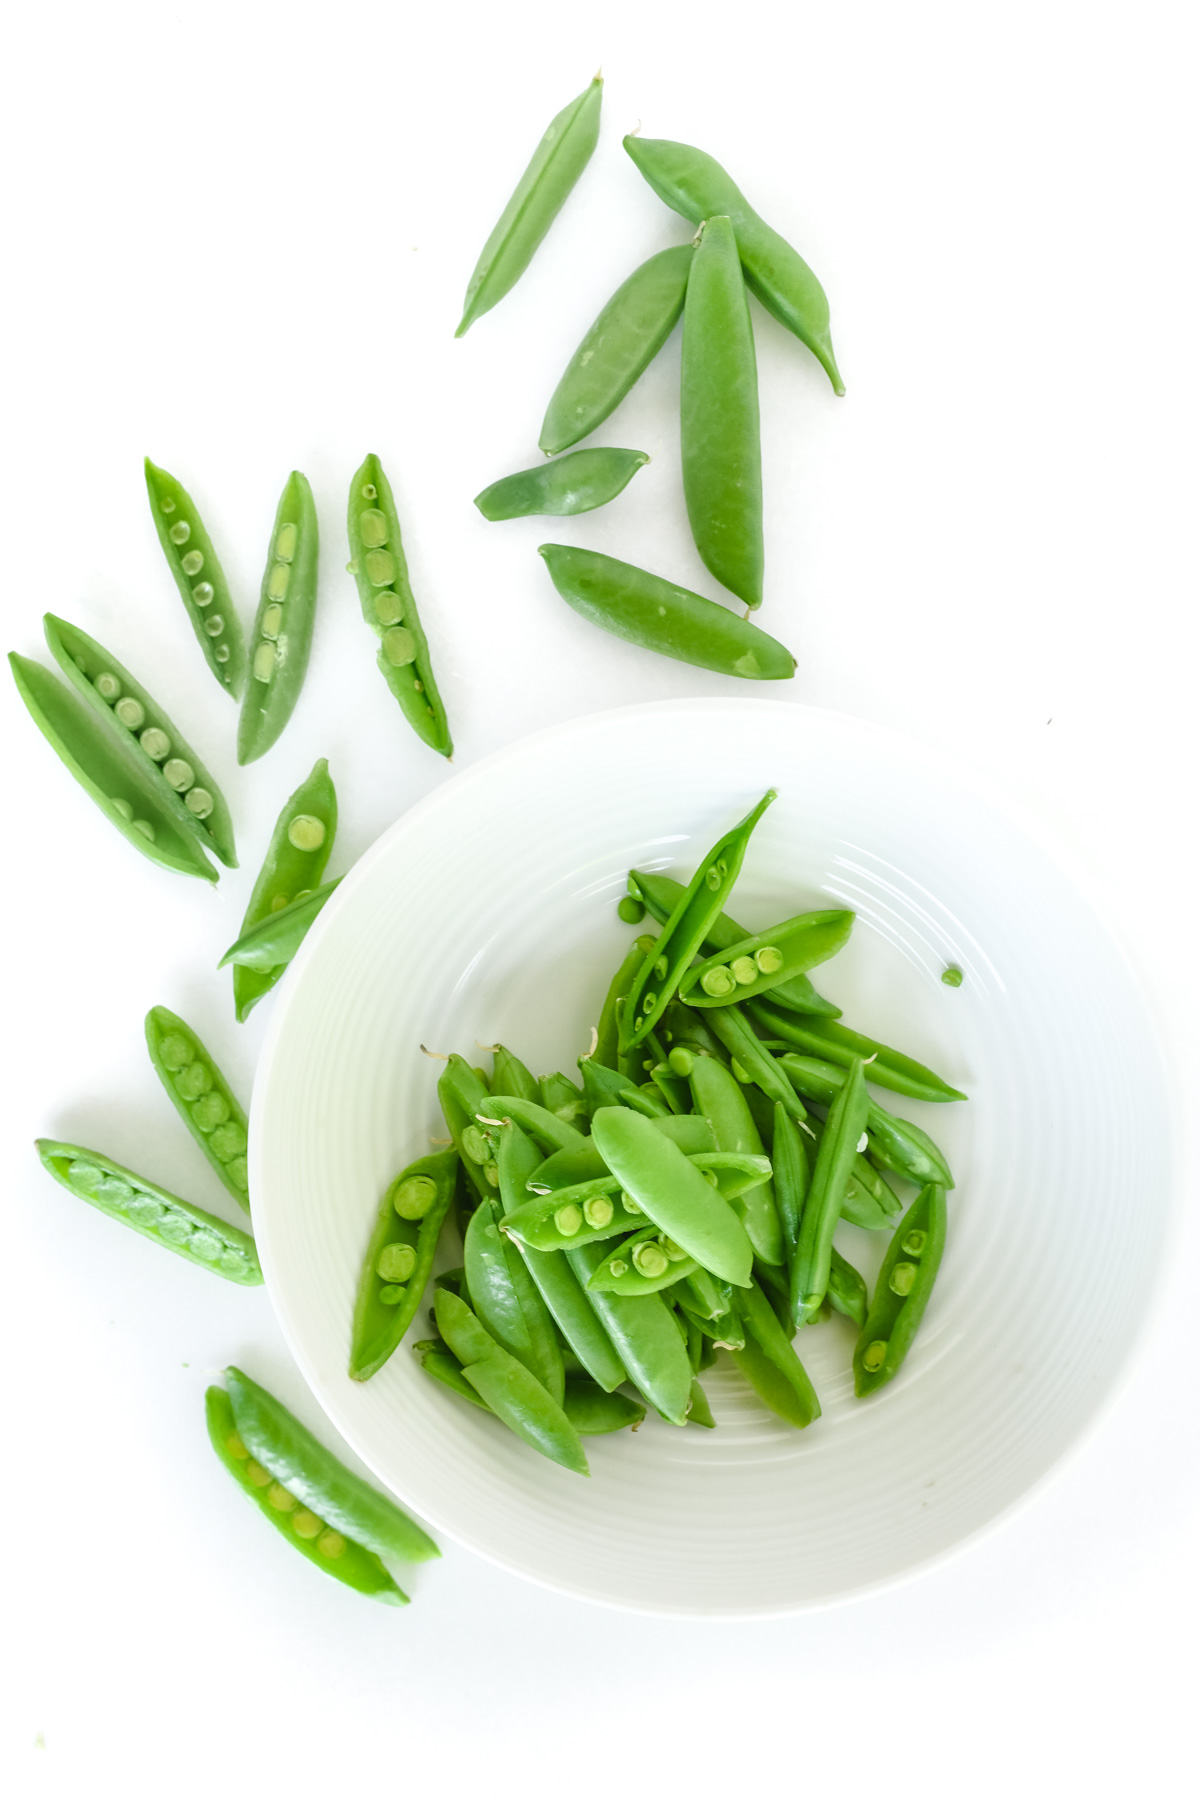 snap peas in a bowl